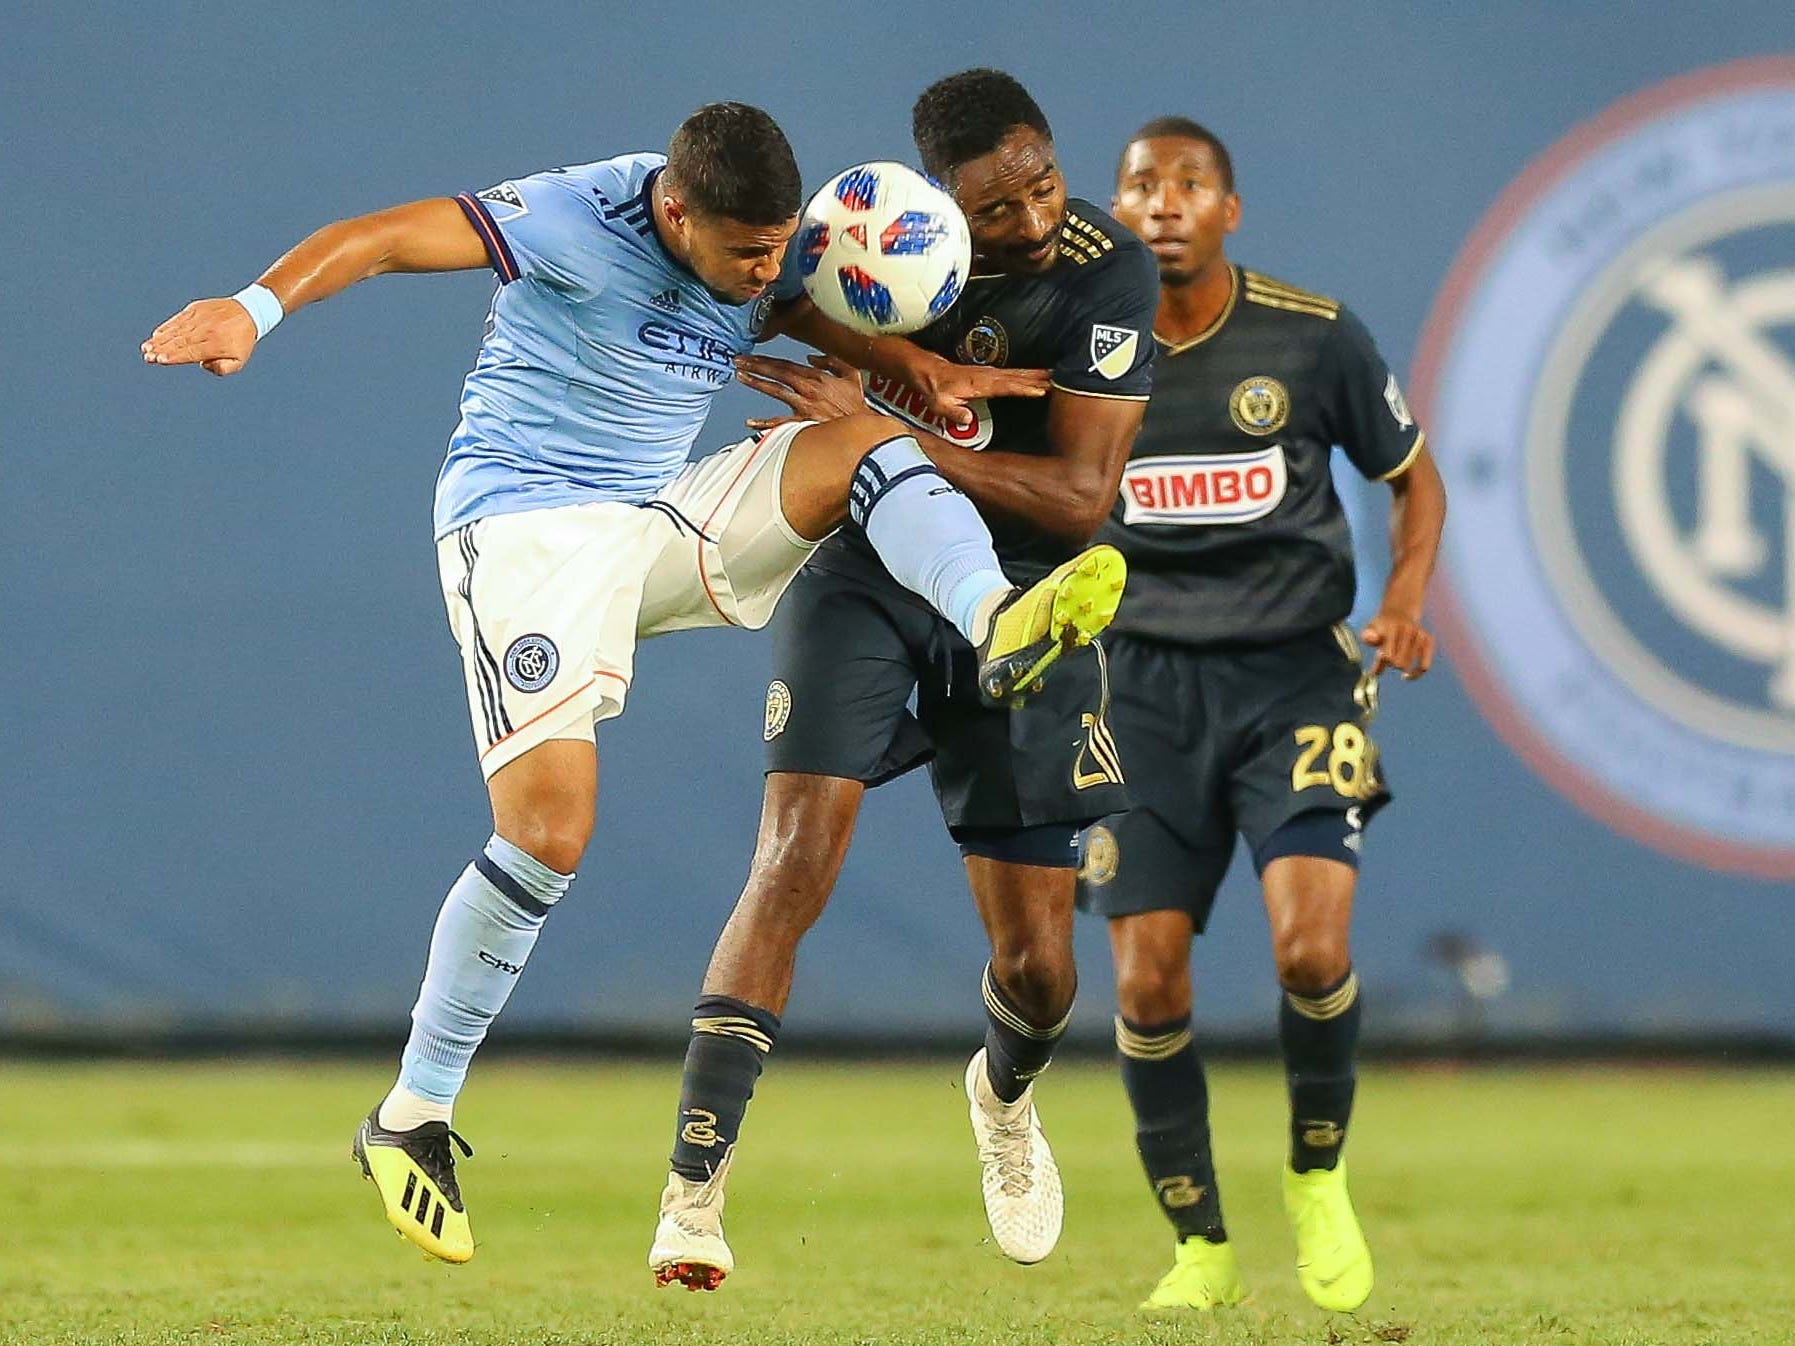 New York City FC midfielder Ismael Tajouri (29) plays the ball against Philadelphia Union defender Warren Creavalle (2) in front of defender Ray Gaddis (28) during the first half at Yankee Stadium.